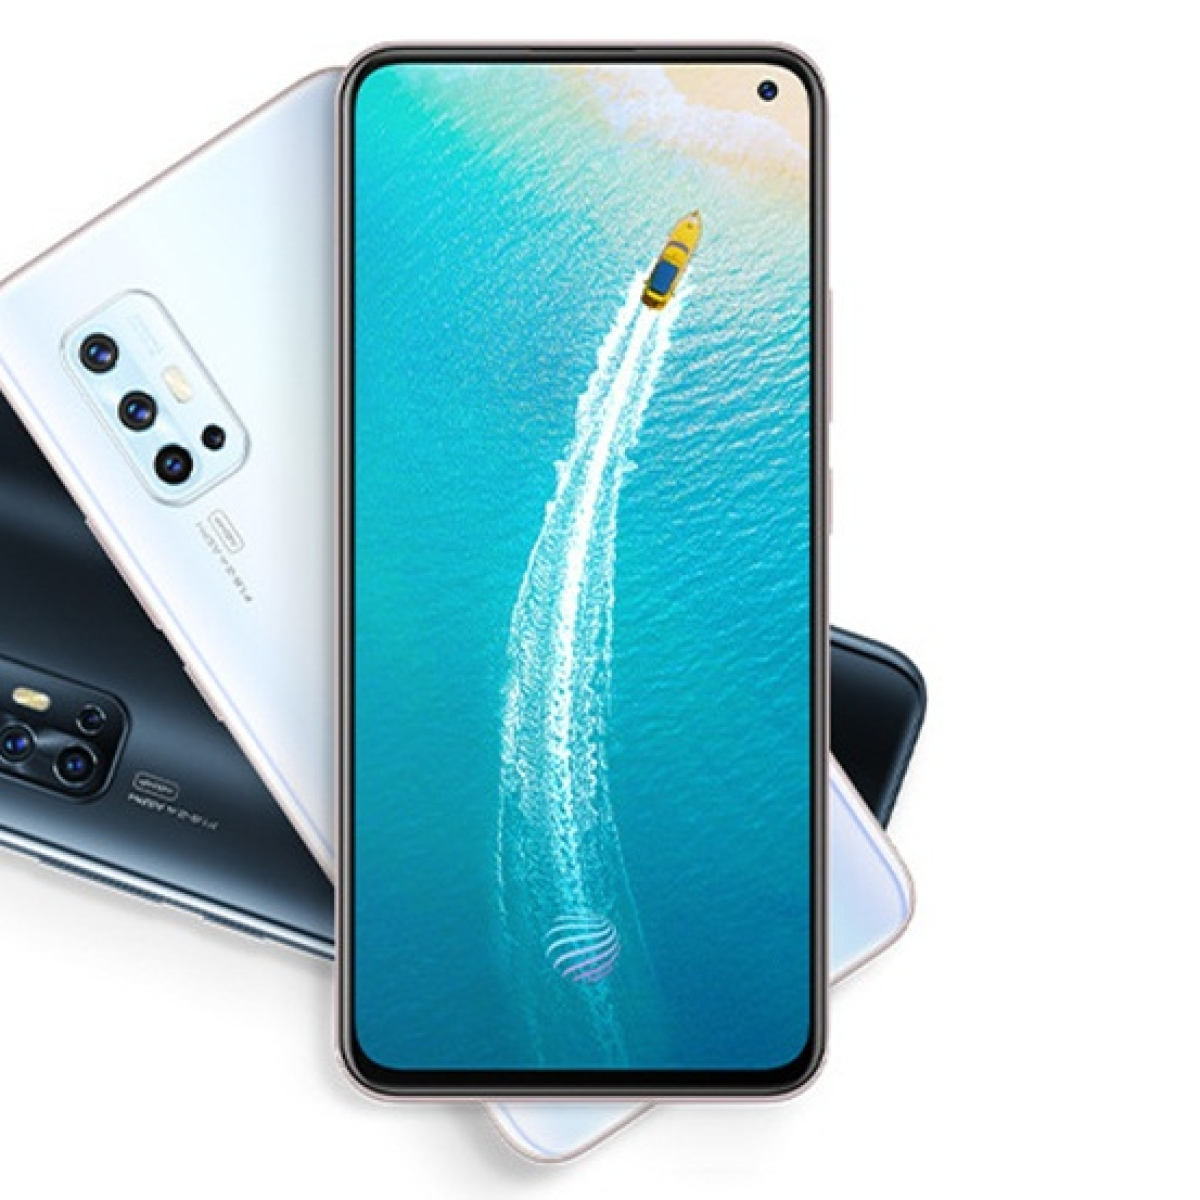 Vivo V17 with a hole-punch display, 8GB RAM, and quad rear cameras launched in India